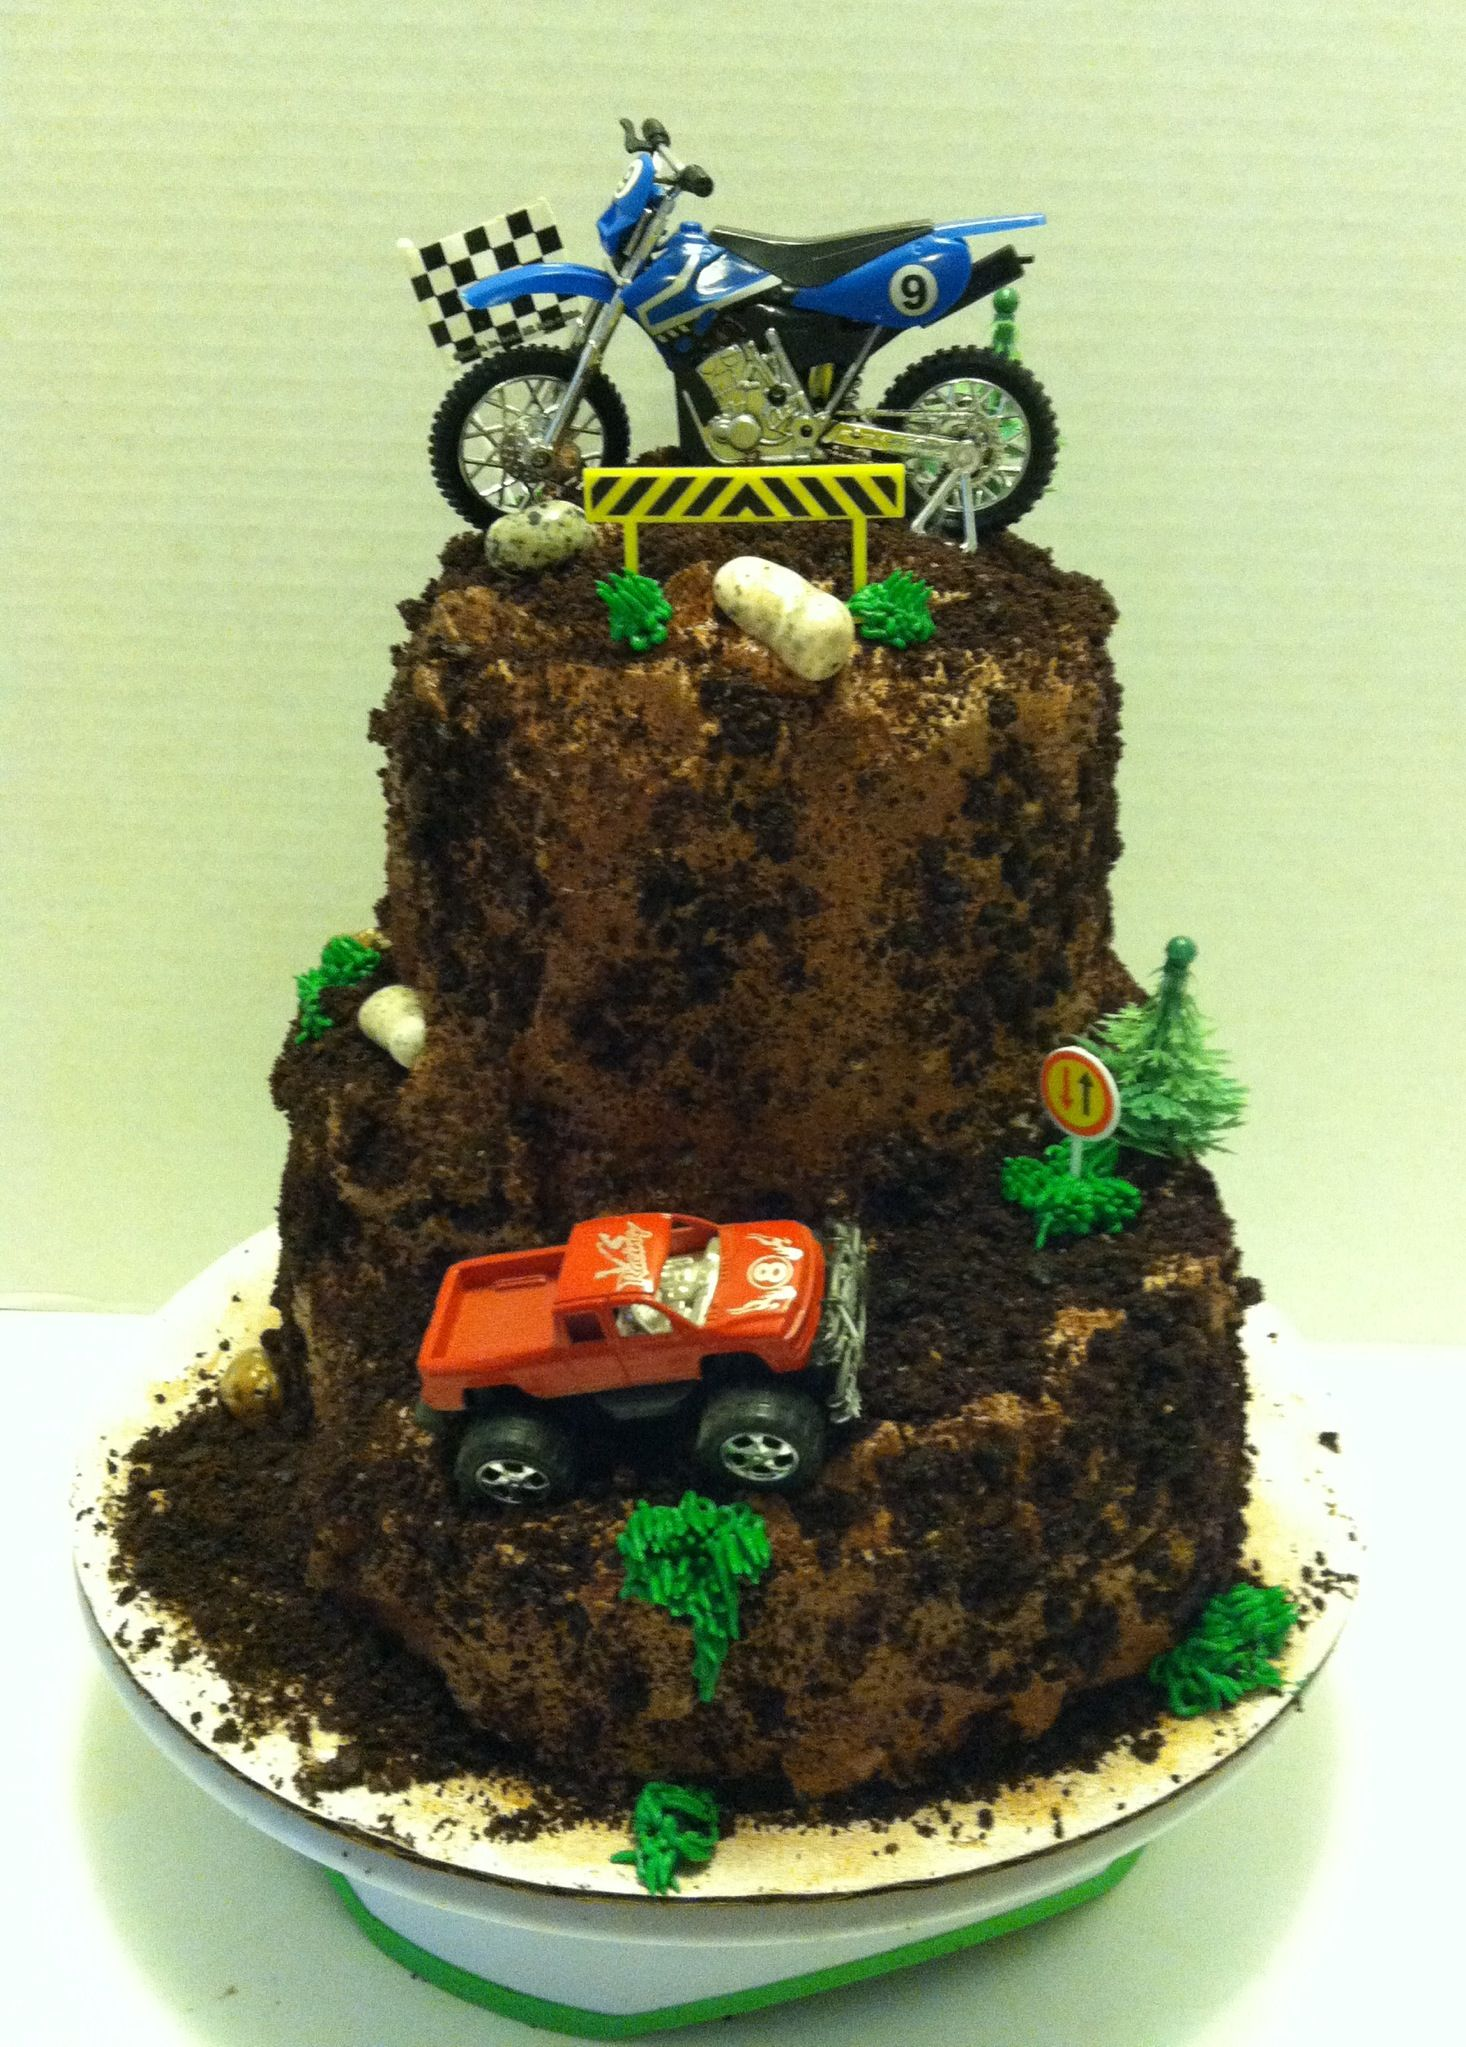 Superb Dirt Bike And Monster Truck Theme Cake Dirt Bike Cakes Bike Funny Birthday Cards Online Alyptdamsfinfo